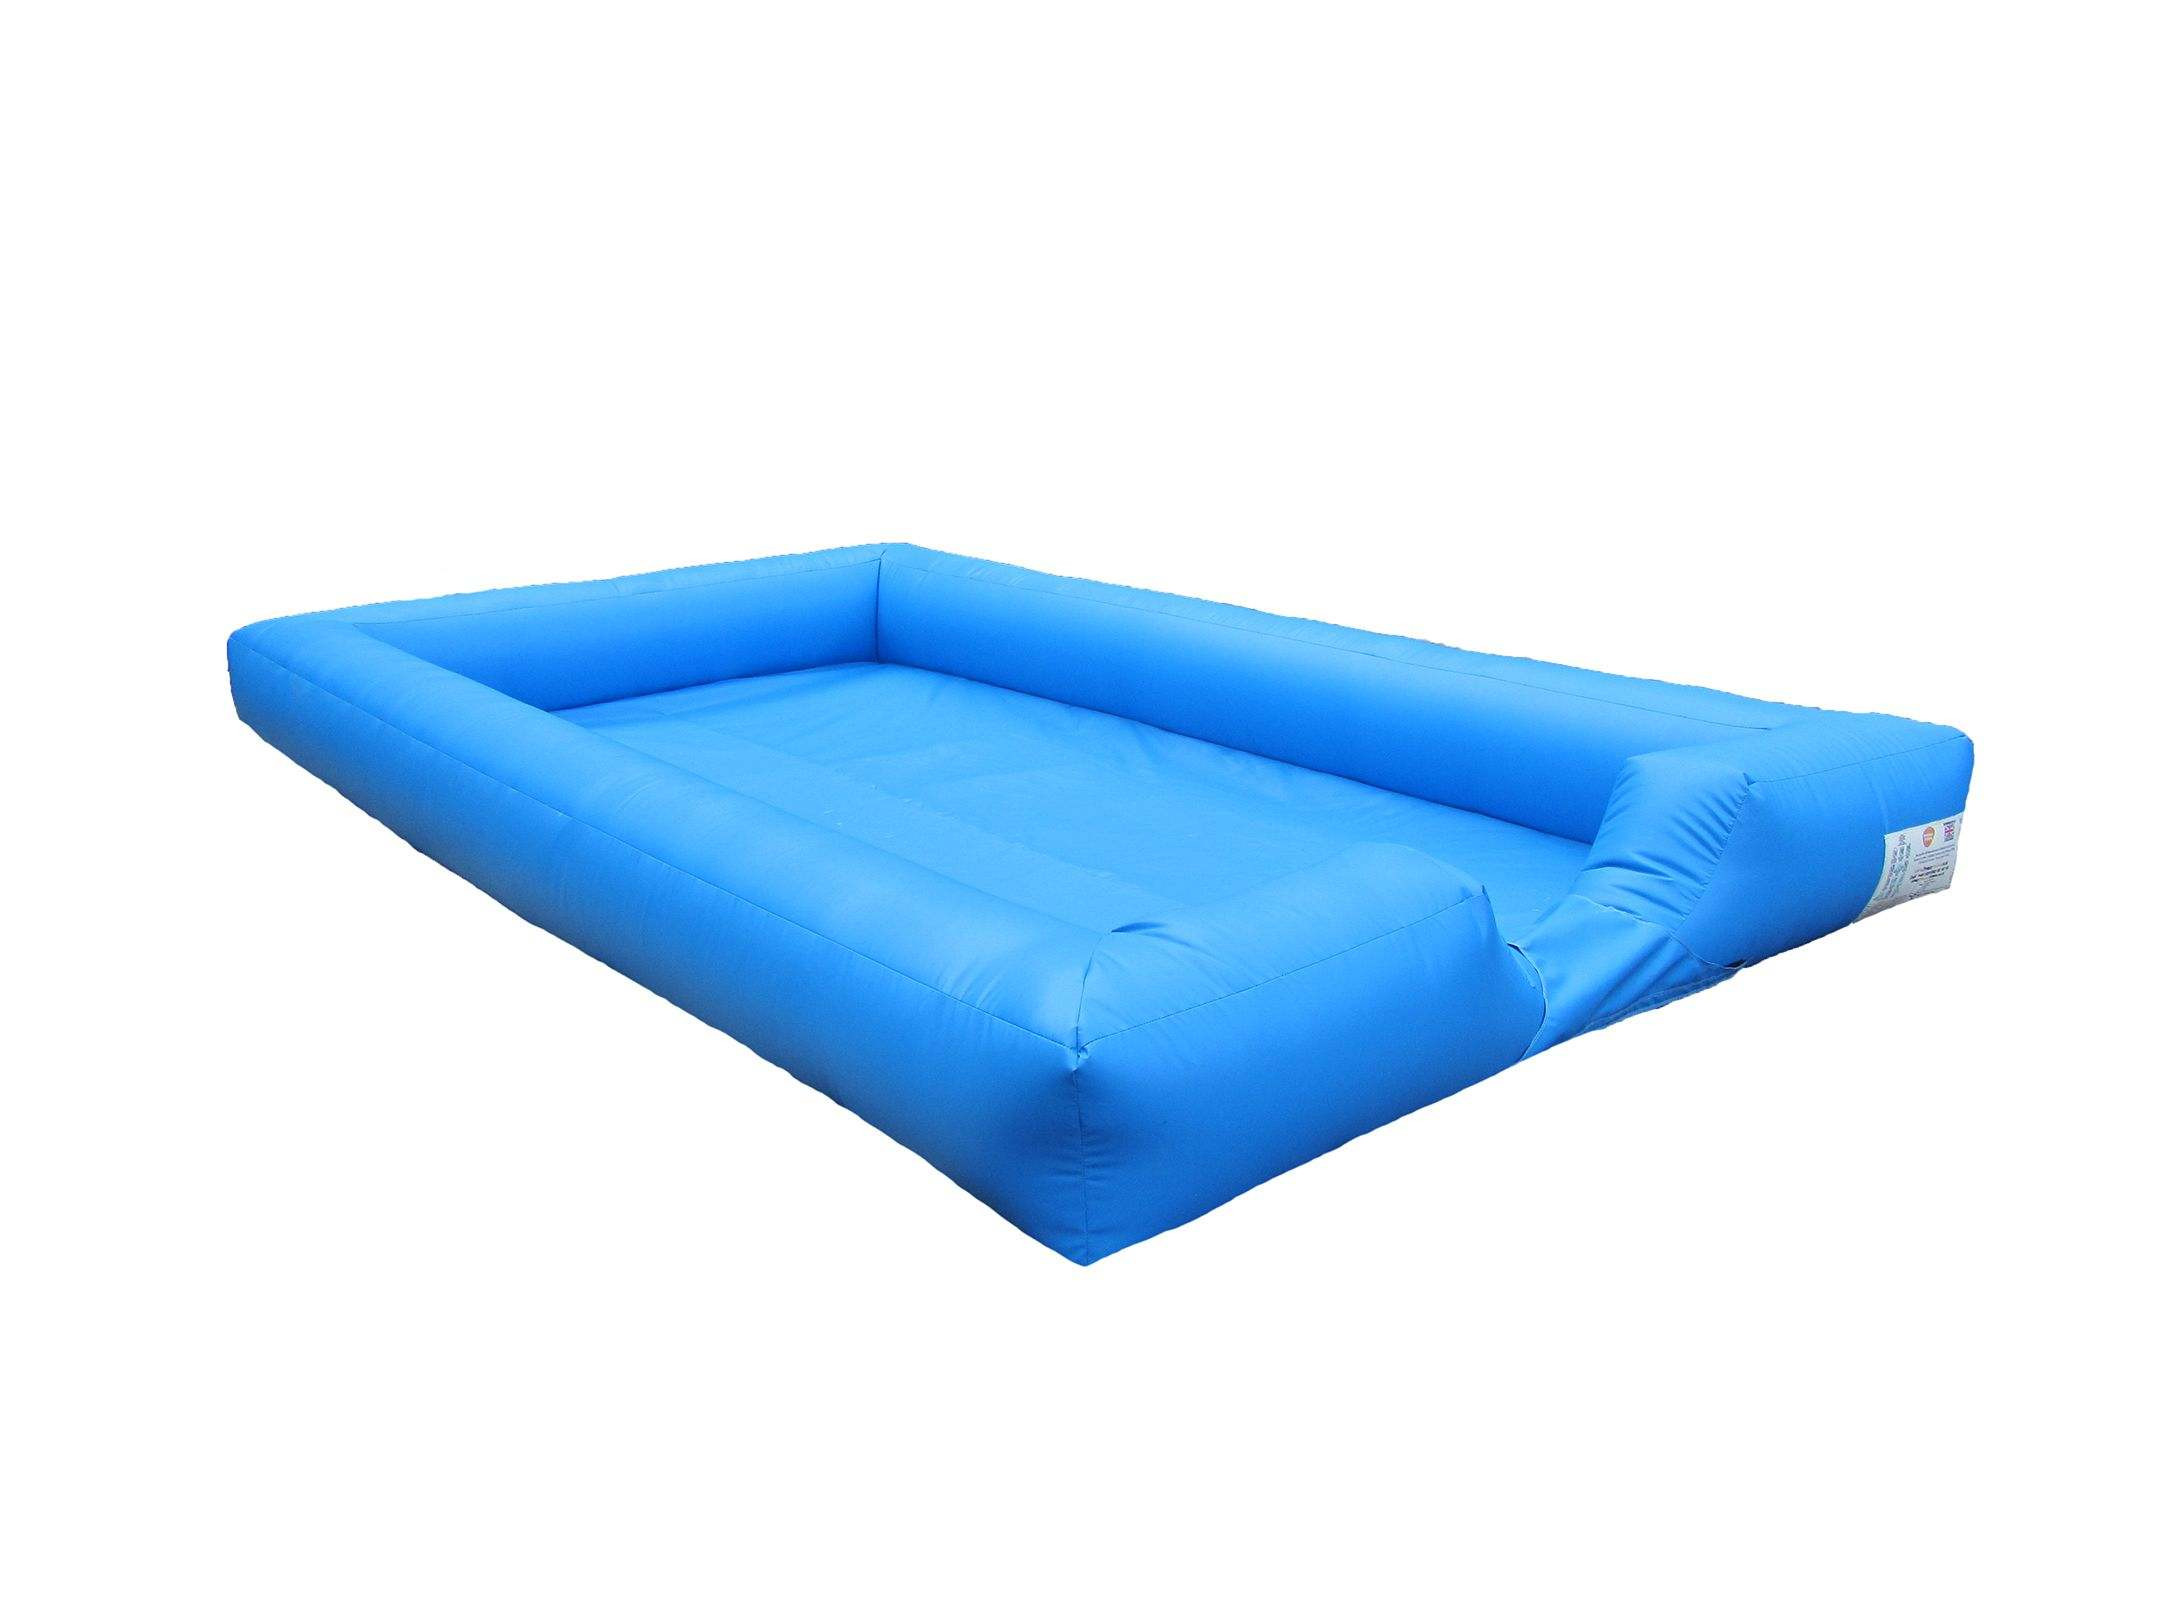 Blue plain inflatable ball pond 3 compressor